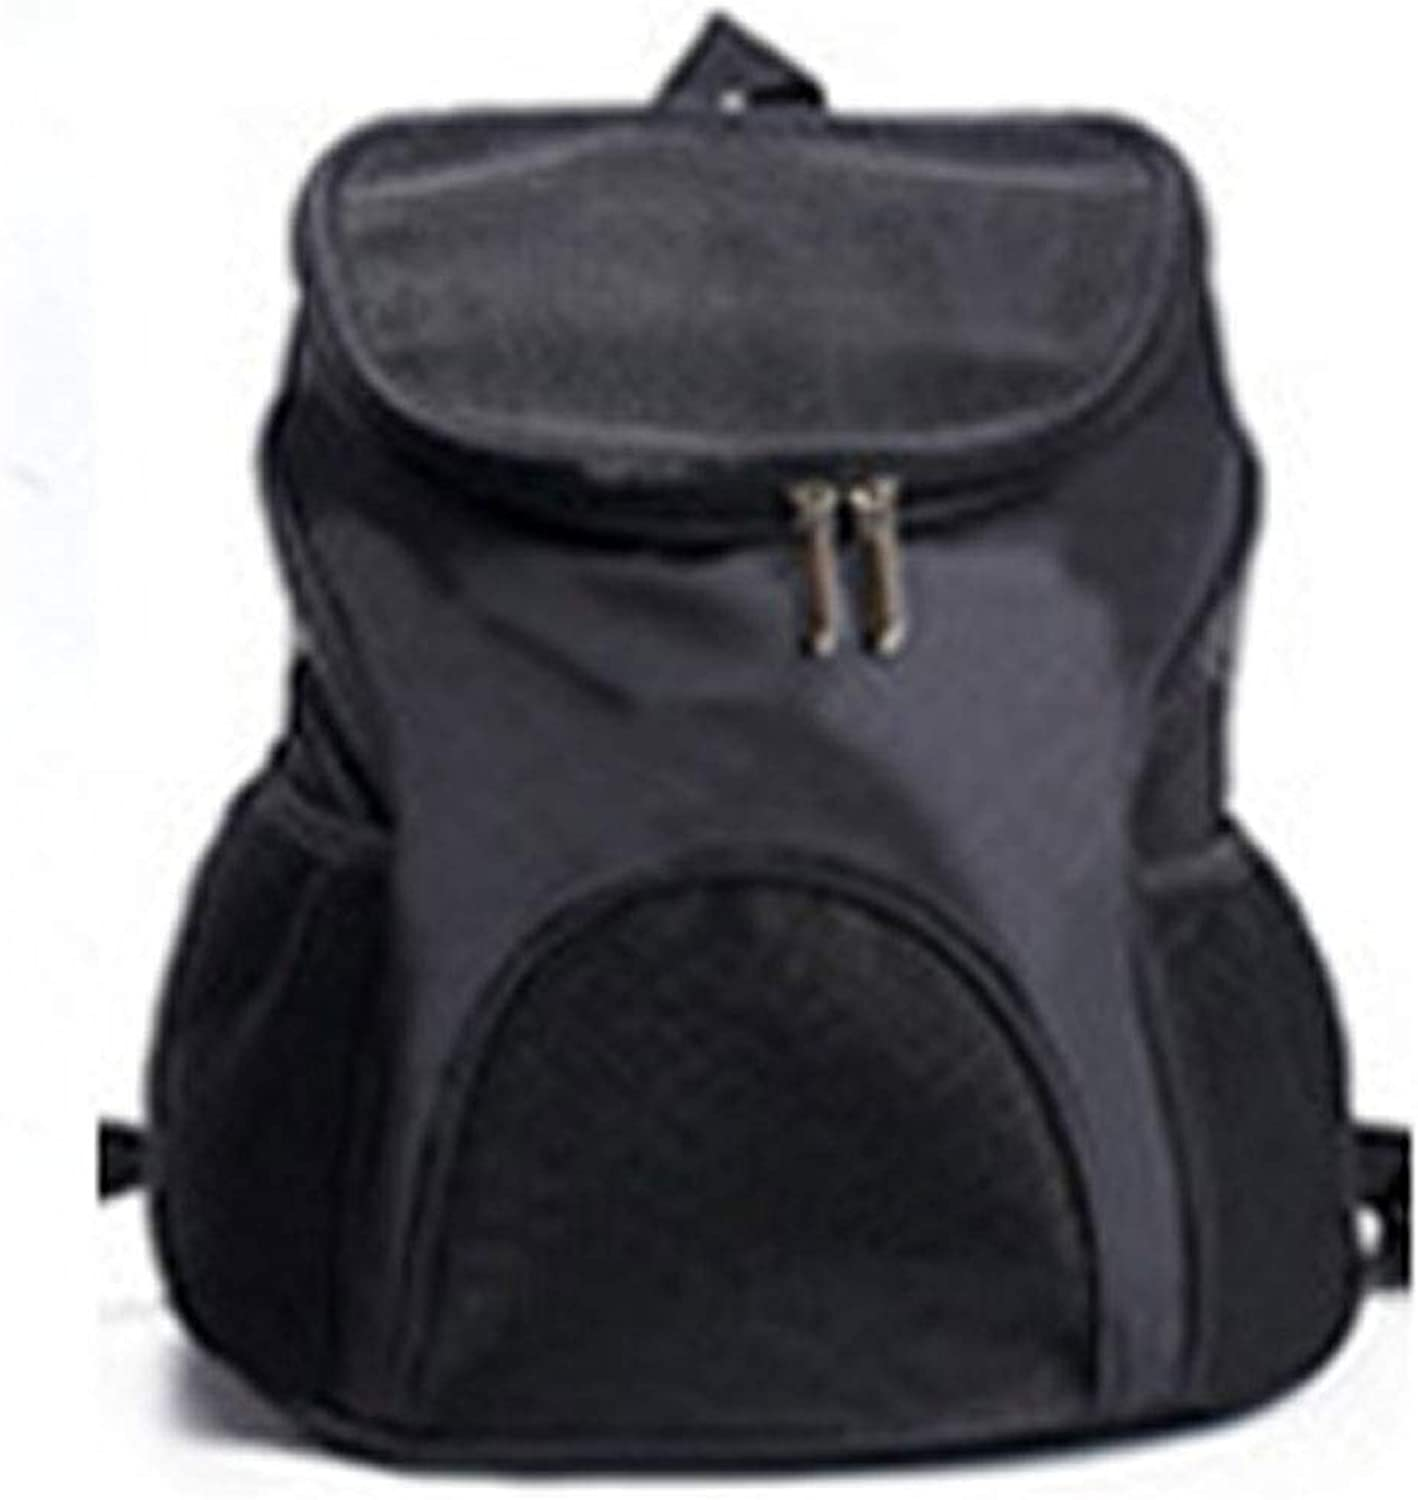 HAOJINFENG Dog Bag Breathable Front Chest Bag Pet Out Portable Backpack Multicolor Optional